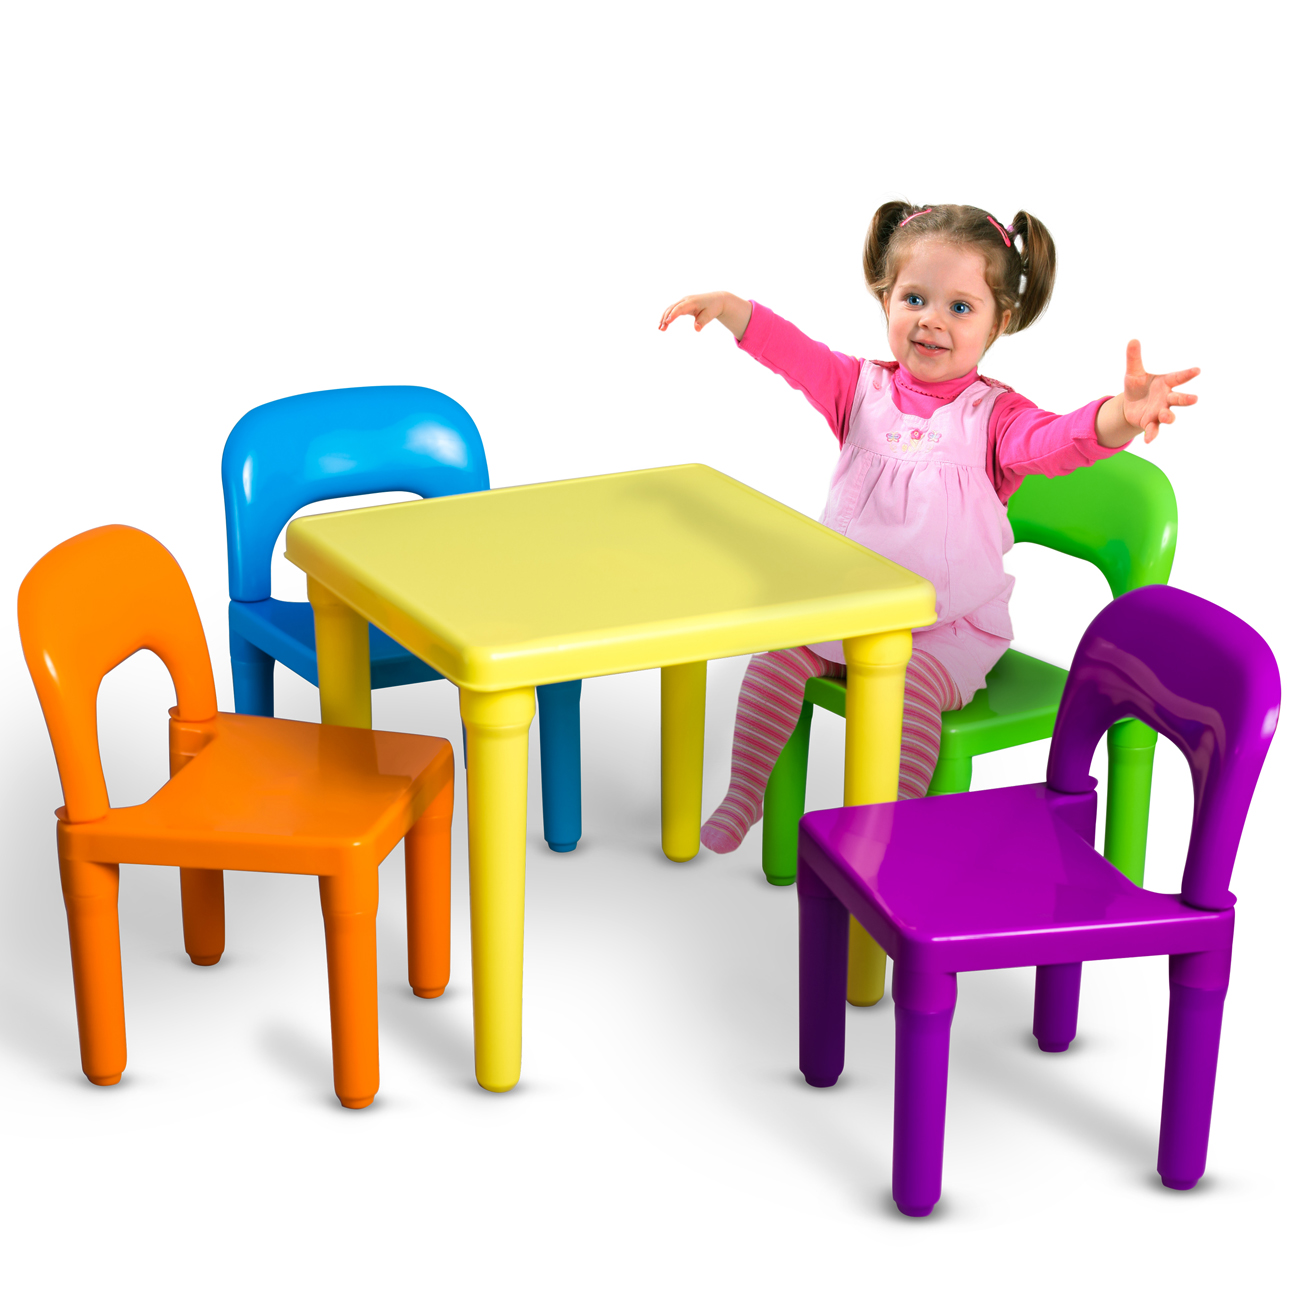 Superior OxGord Kids Table And Chairs Play Set For Toddler Child Toy Activity  Furniture Indoor Or Outdoor   Walmart.com